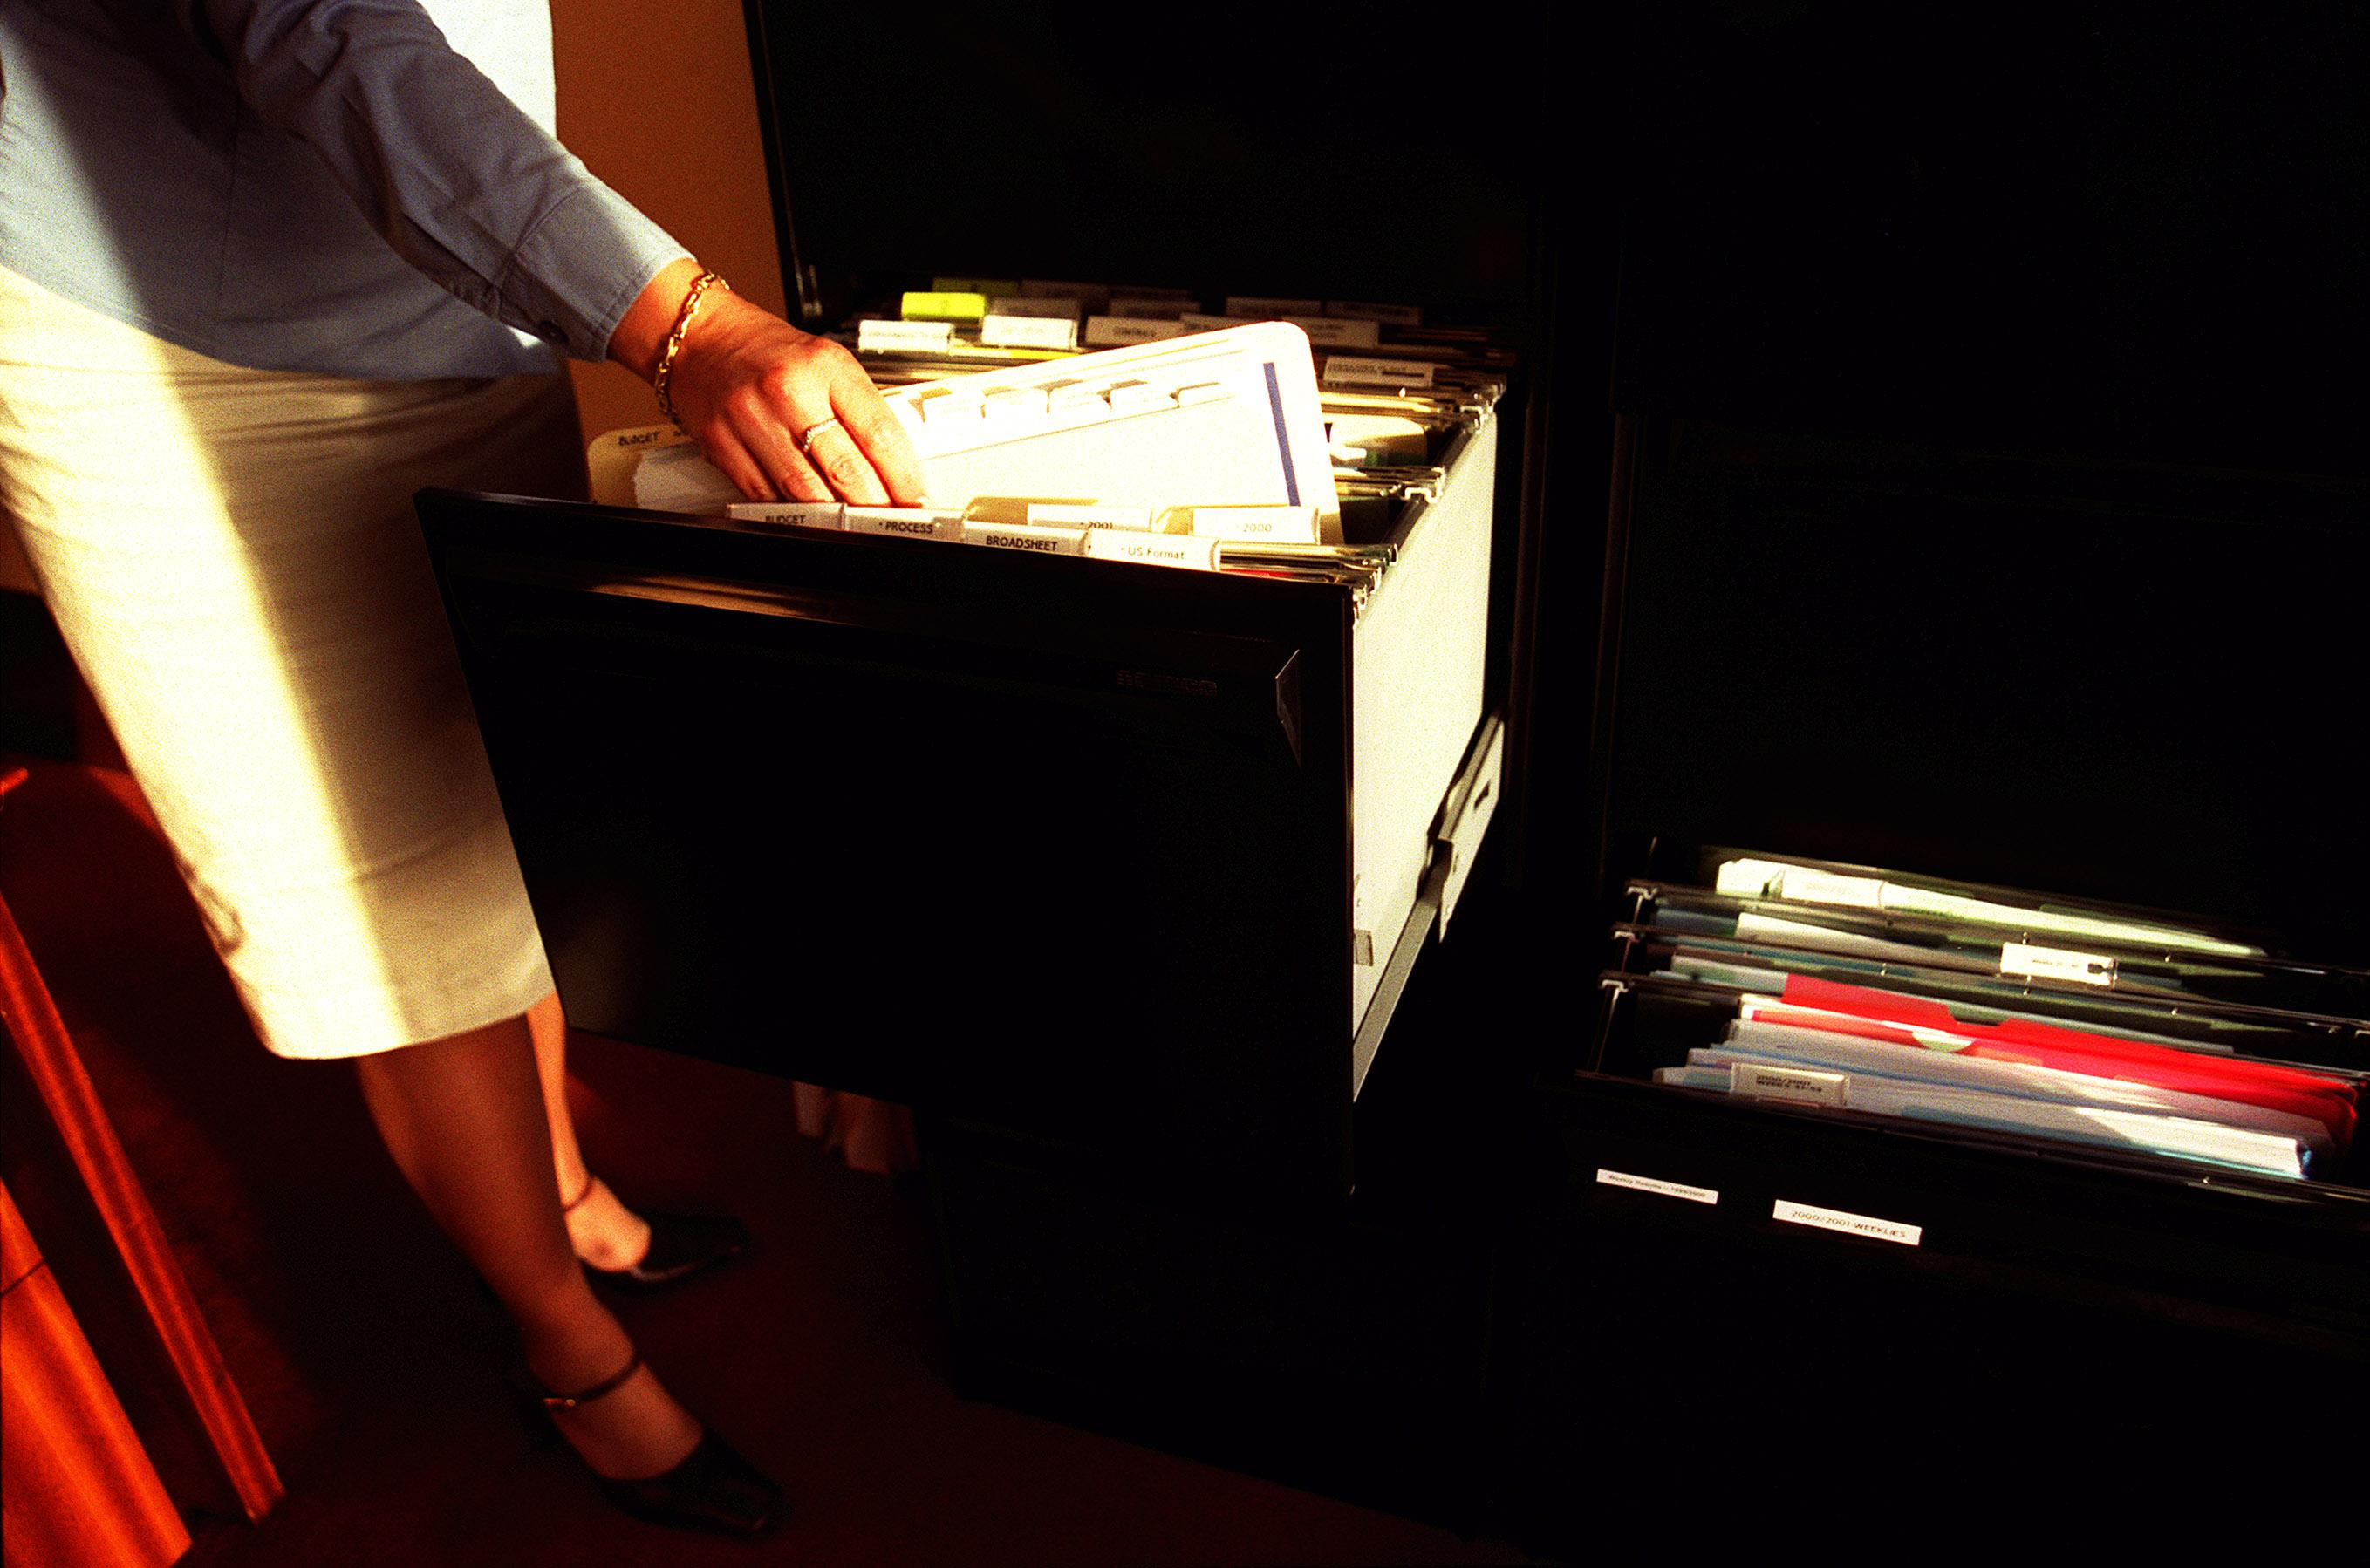 Generic woman taking files out of a filing cabinet in an office, 16 April 2002.